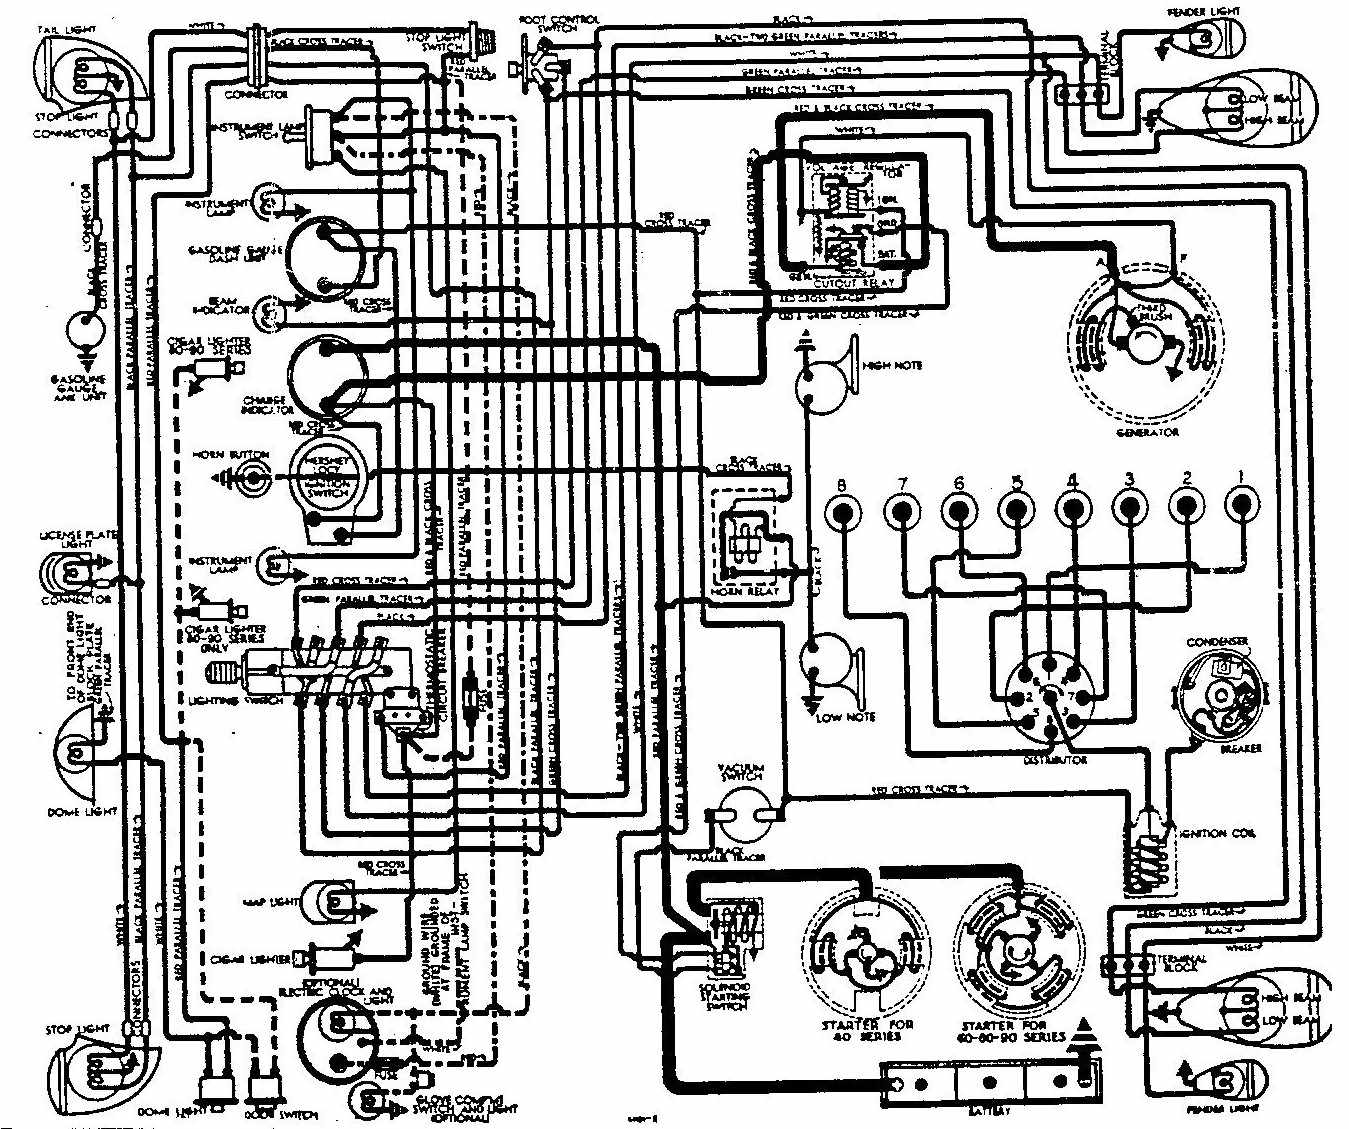 Wiring Diagram Art Download Diagrams Arctic Cat Free 1938 Car Harness Get Image About Rh Cardsbox Co